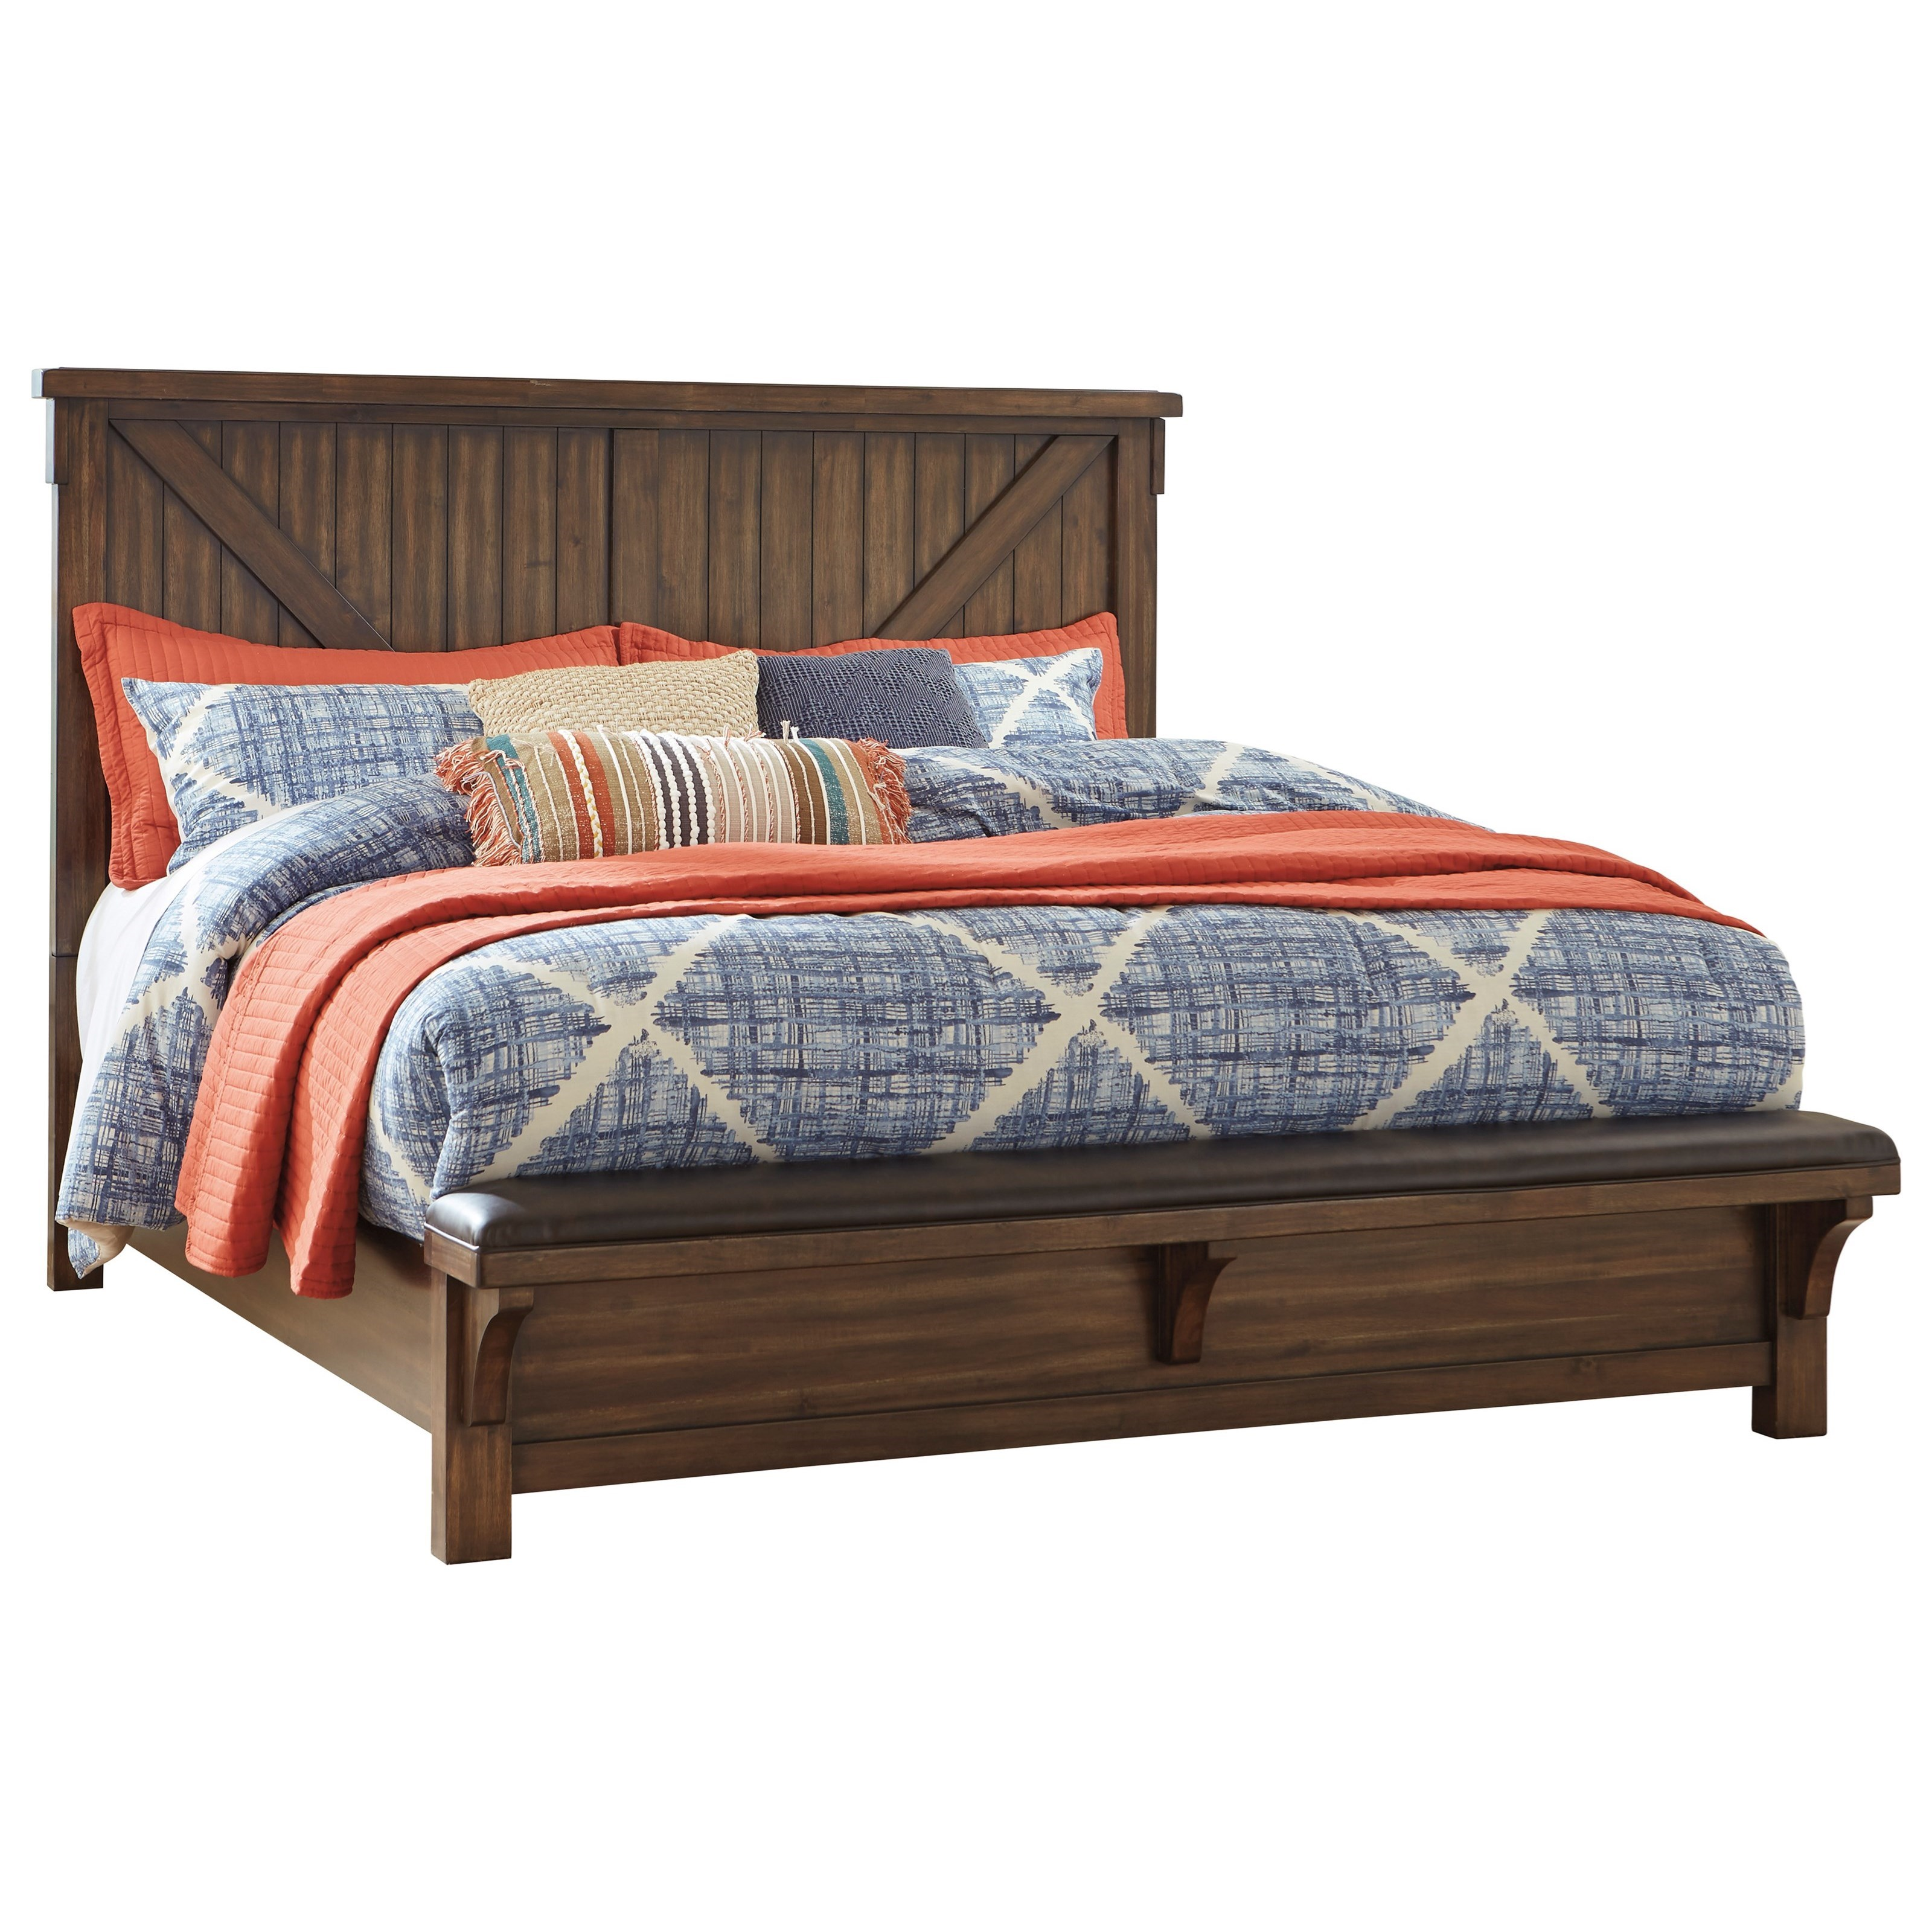 Lakeleigh Queen Panel Bed with Footboard Bench by Signature Design by Ashley at Beck's Furniture